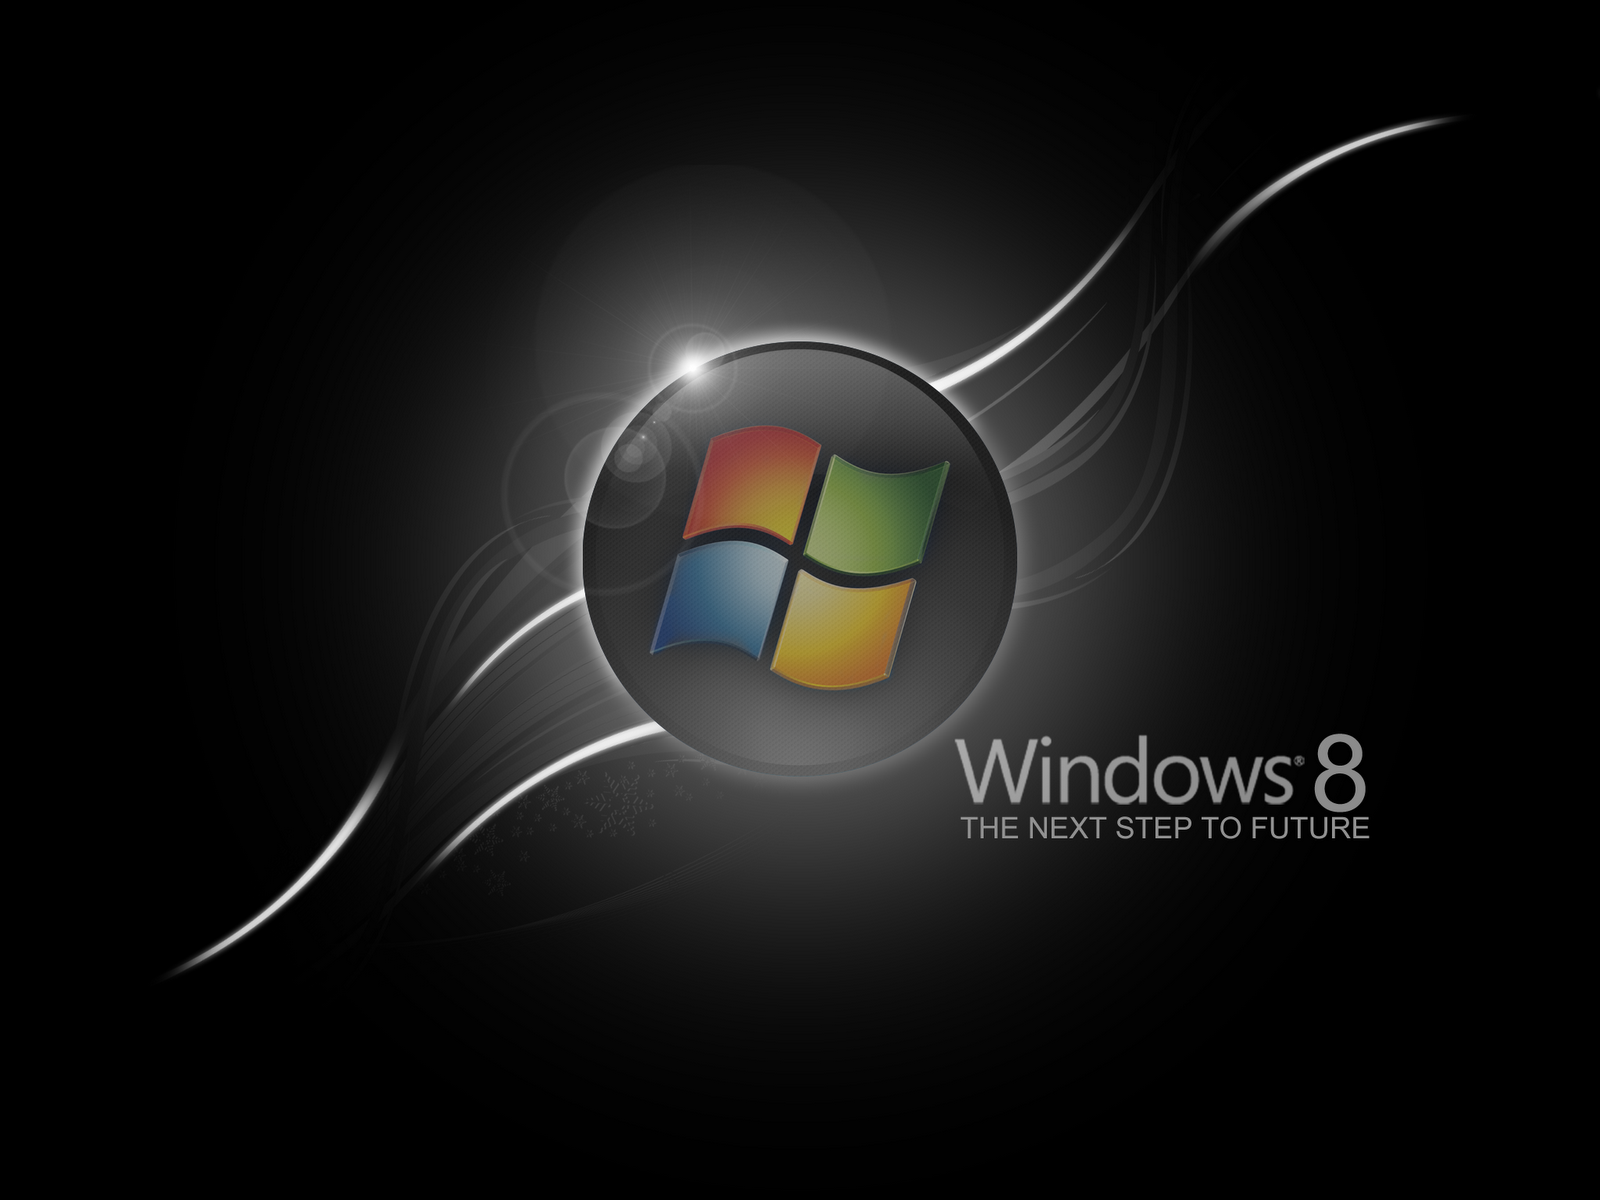 Windows 8.1 HD Wallpaper Themes - WallpaperSafari